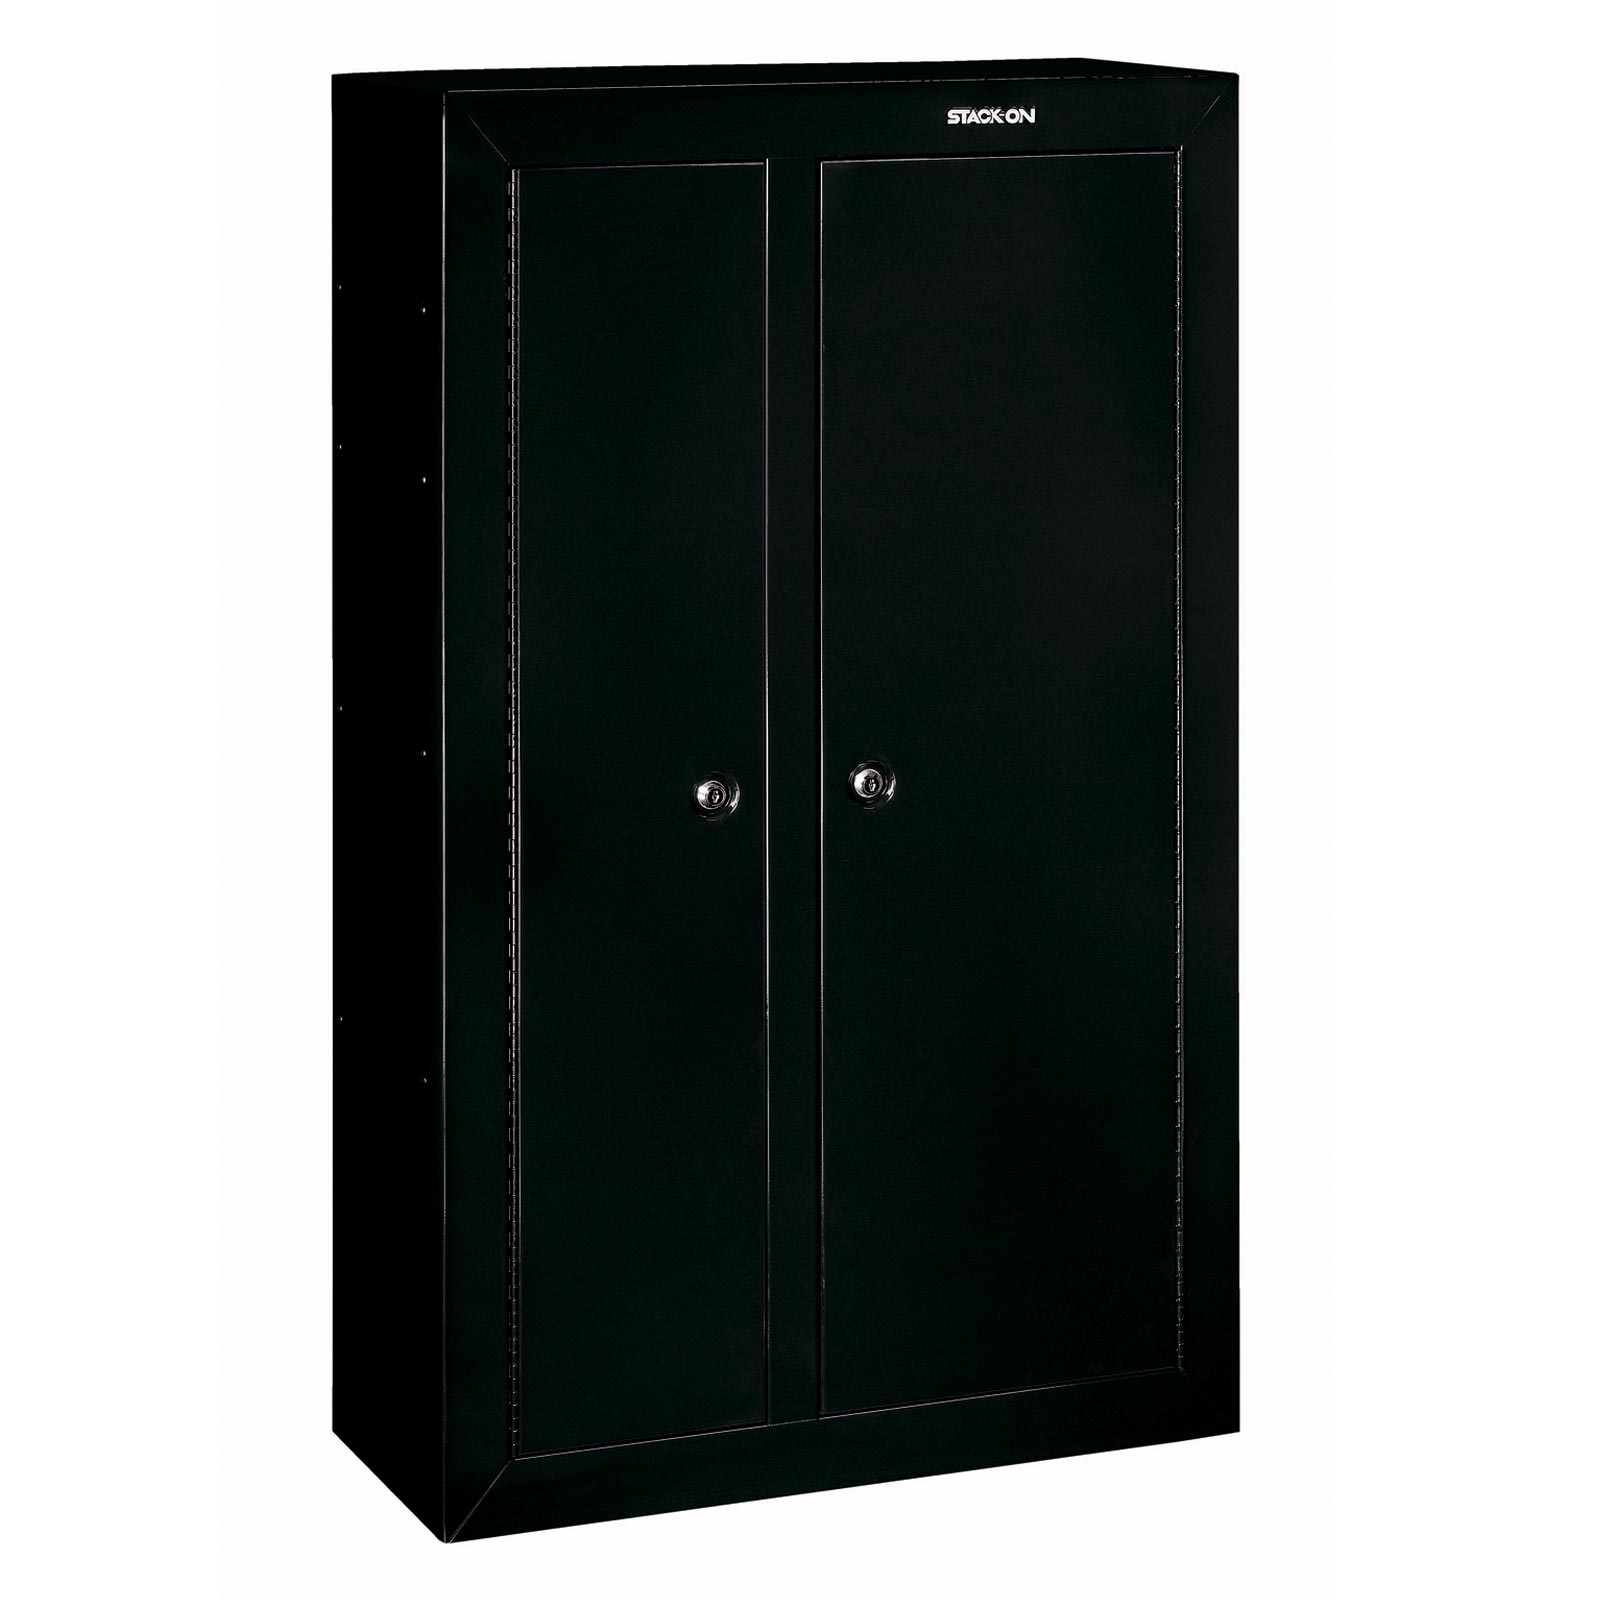 Stack On Gcdb 924 Gun Cabinet Double Door Steel Security